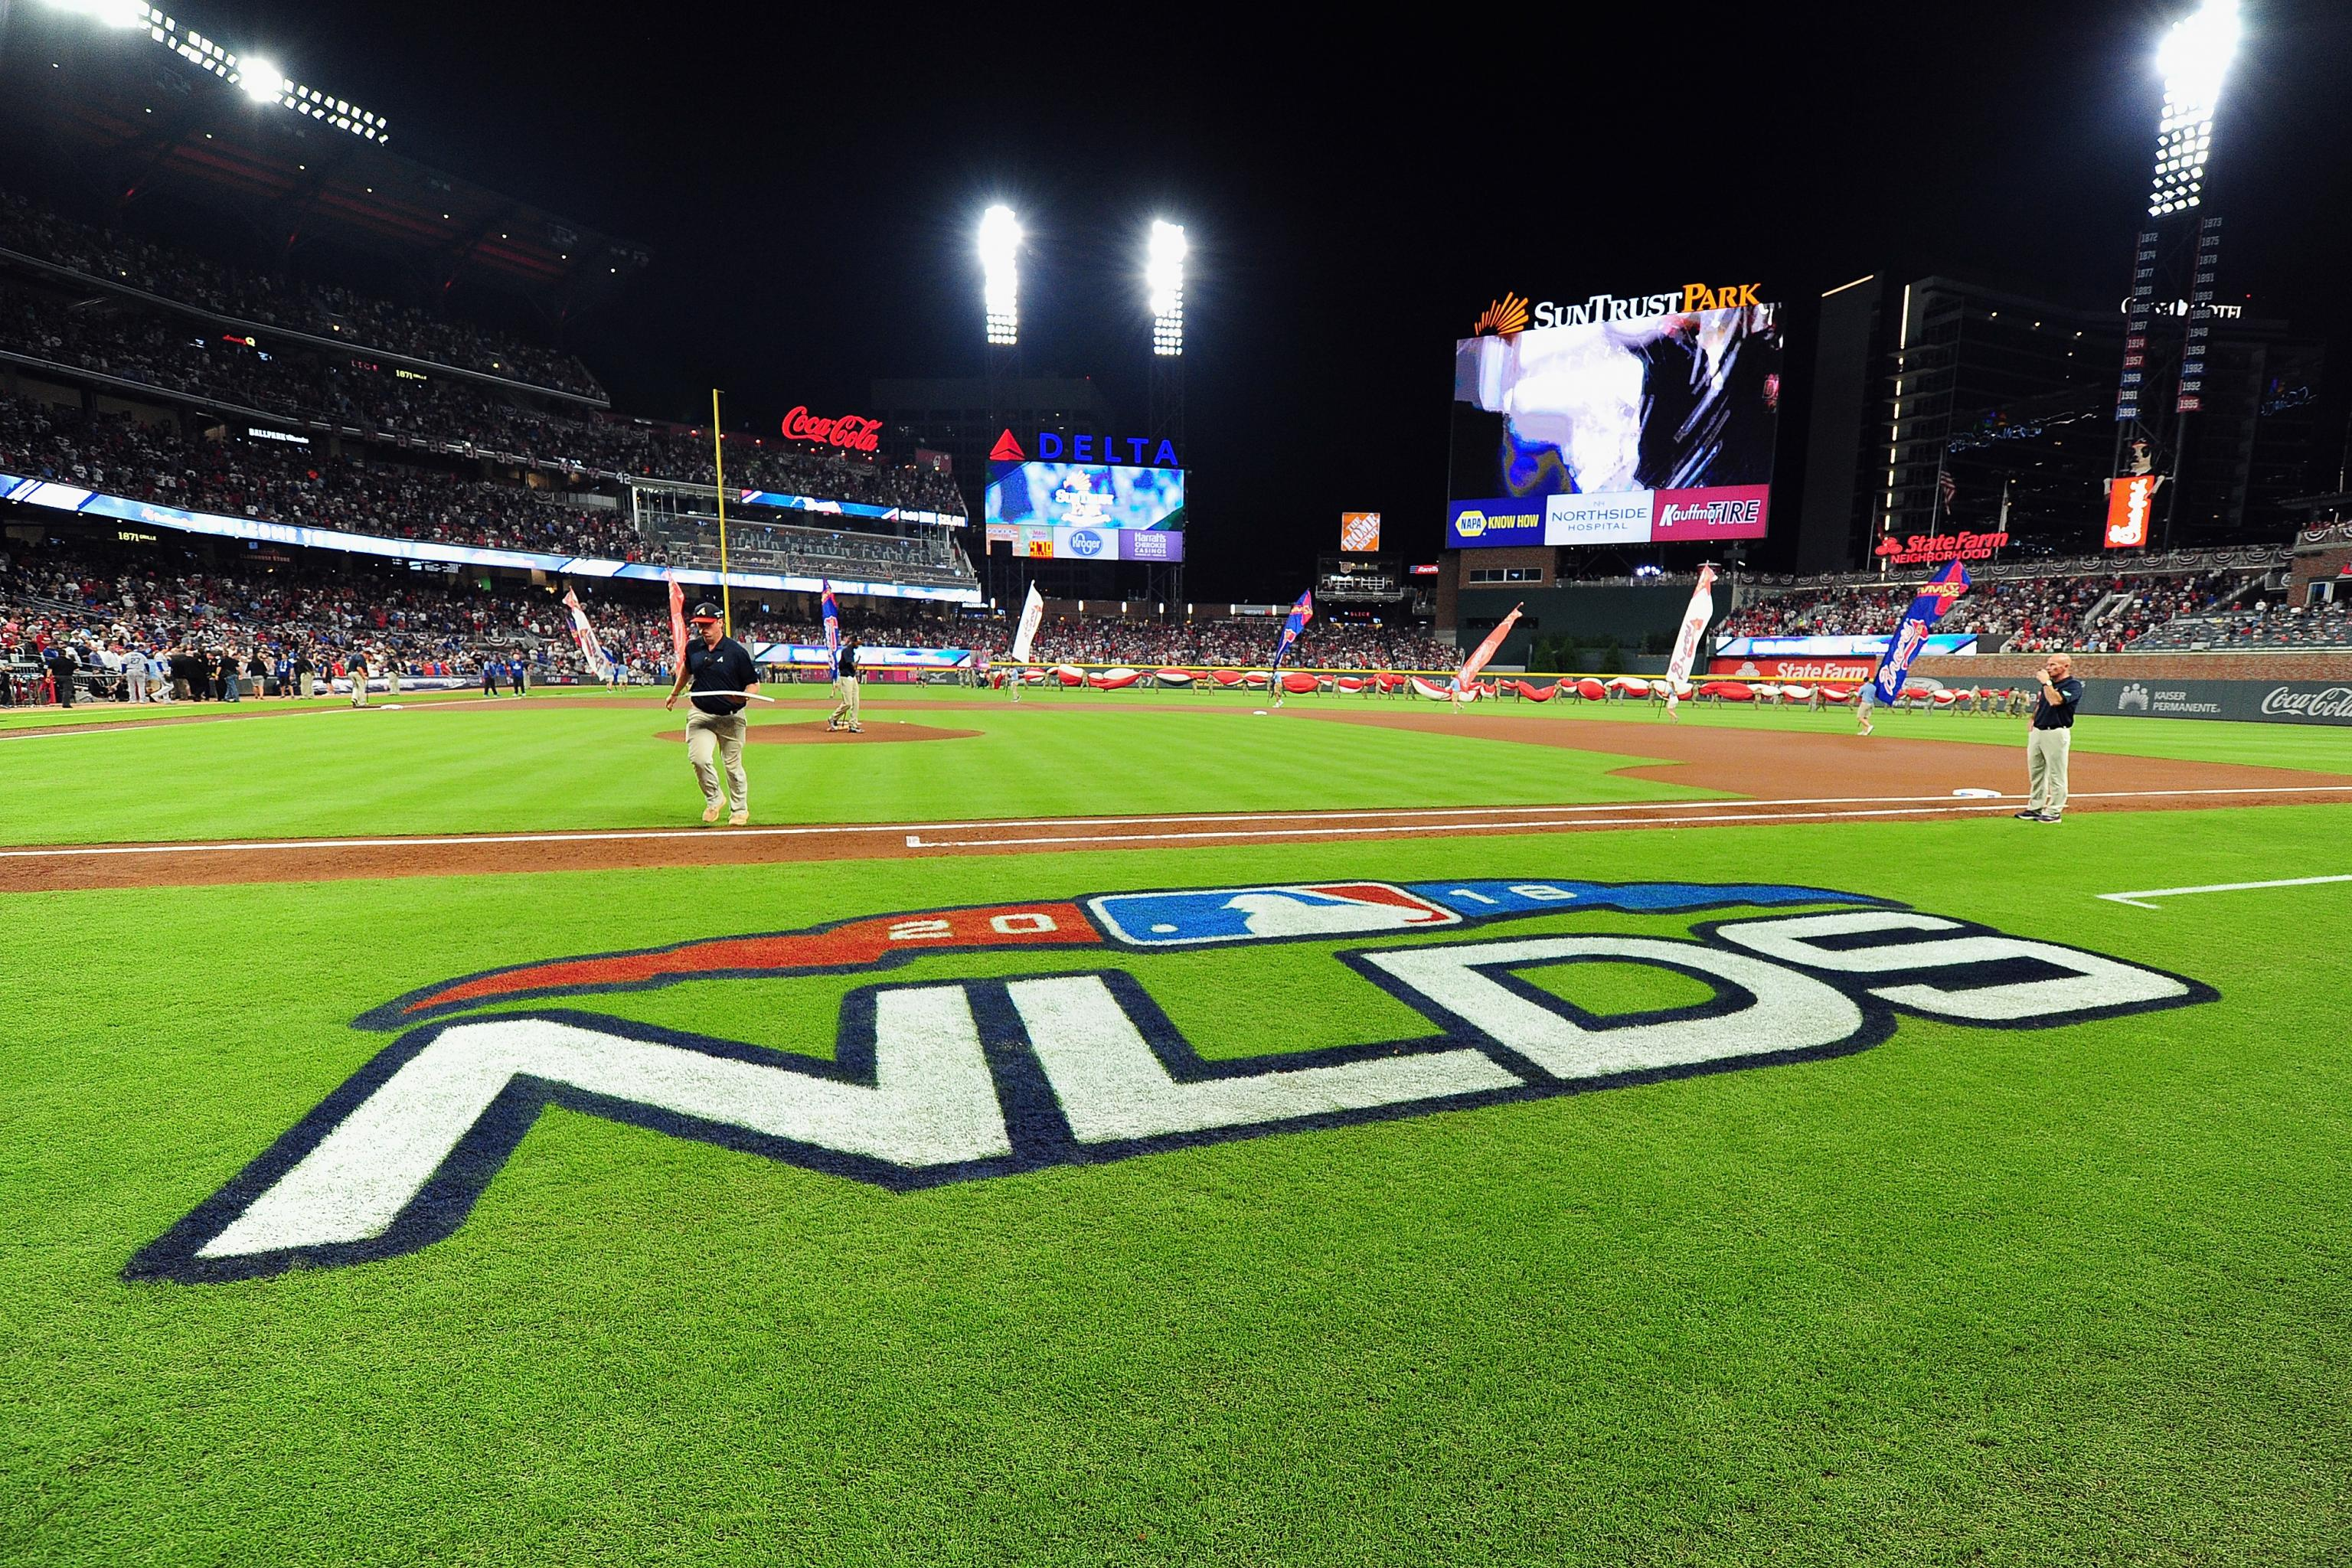 2021 MLB All-Star Game to Be Hosted by Braves at SunTrust